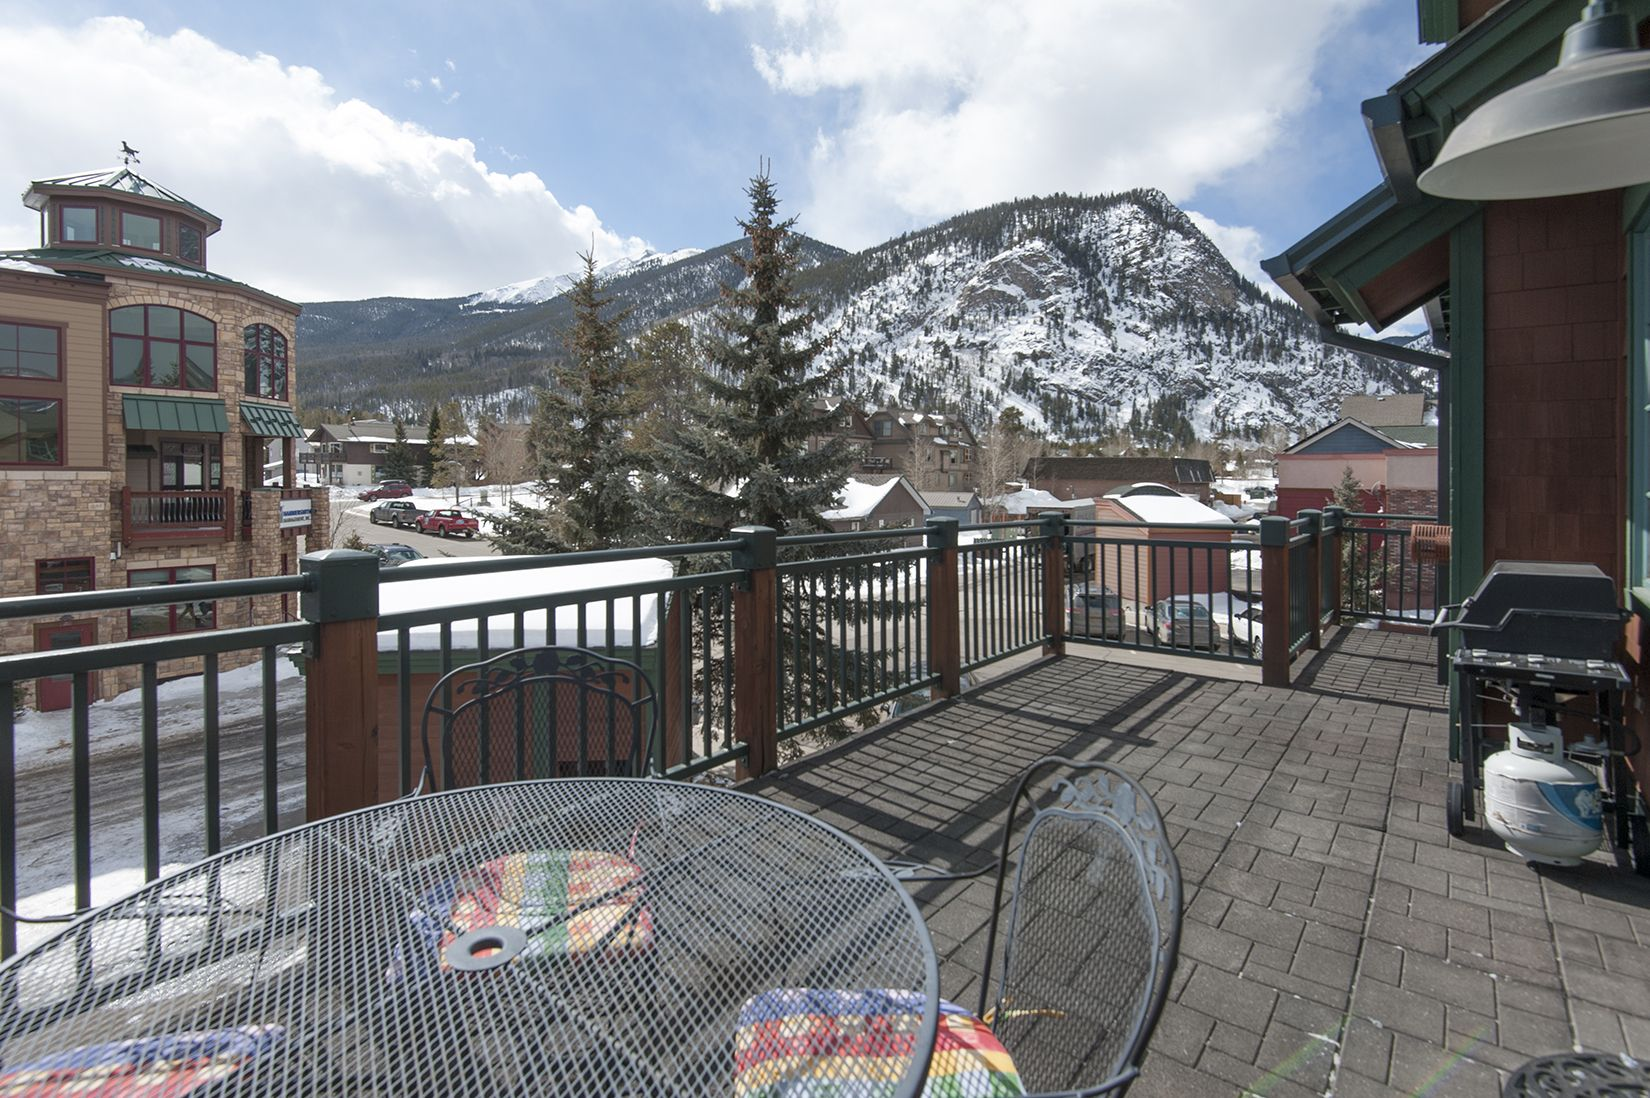 400 E Main STREET E # 204R FRISCO, Colorado 80443